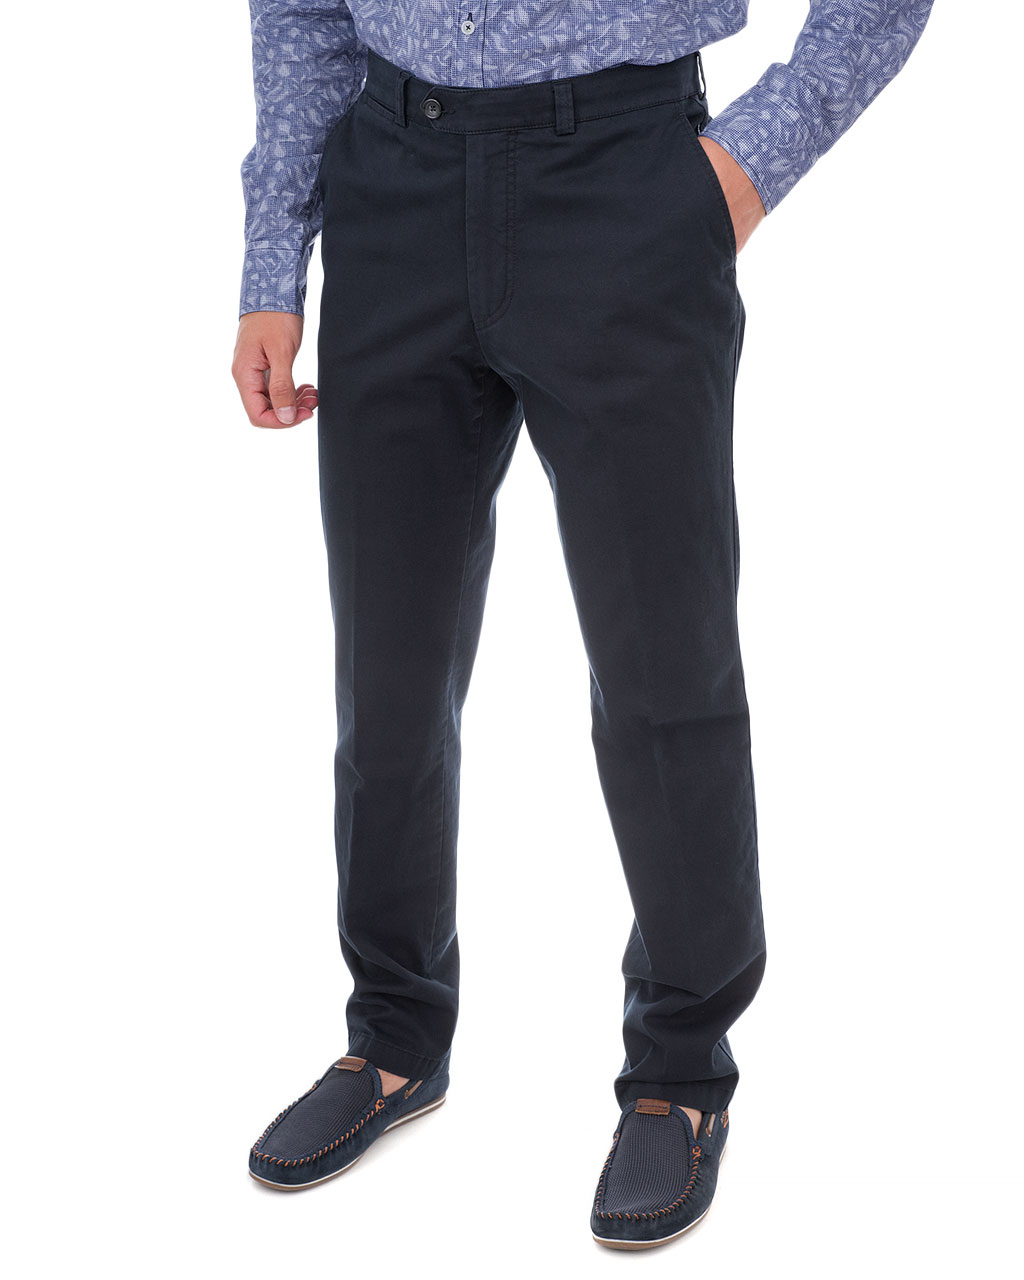 Men's trousers 410401-068/6             (1)